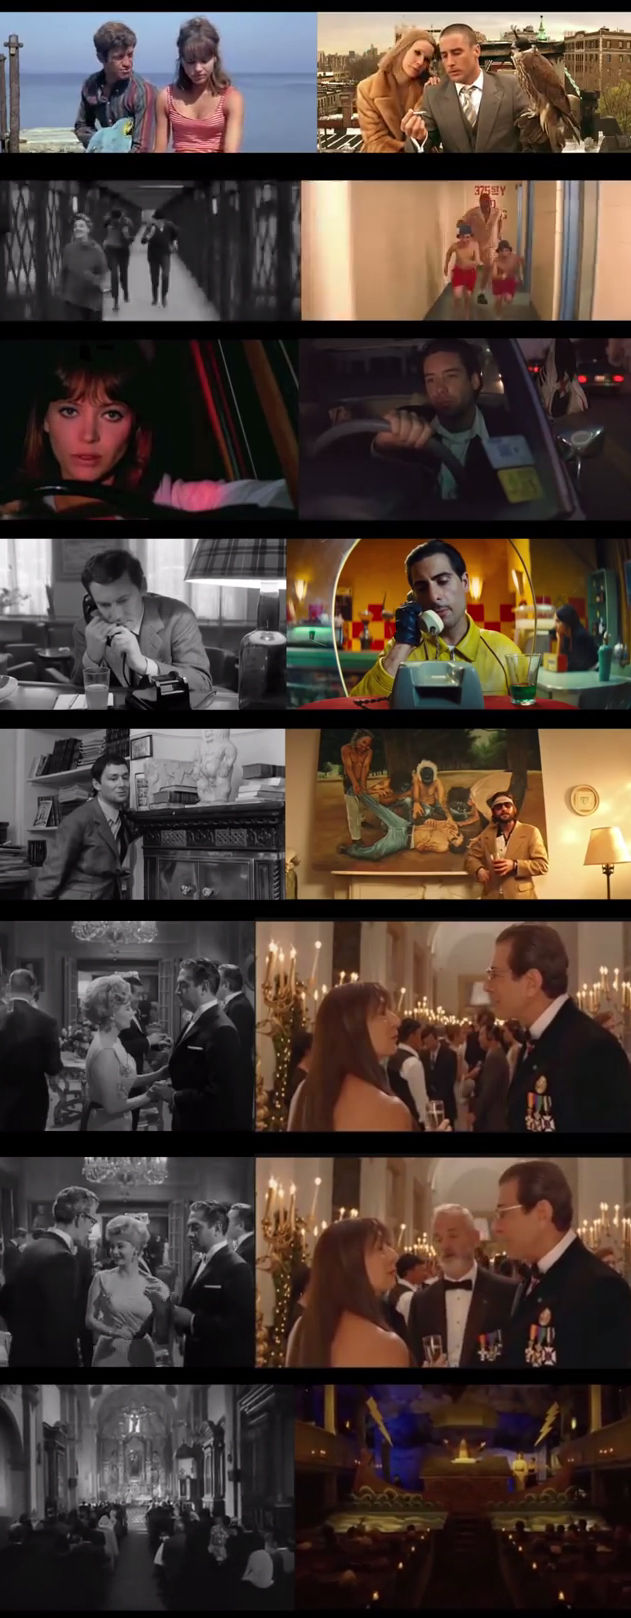 Grand Budapest Hotel (Wes Anderson, 2014) 40431785ww